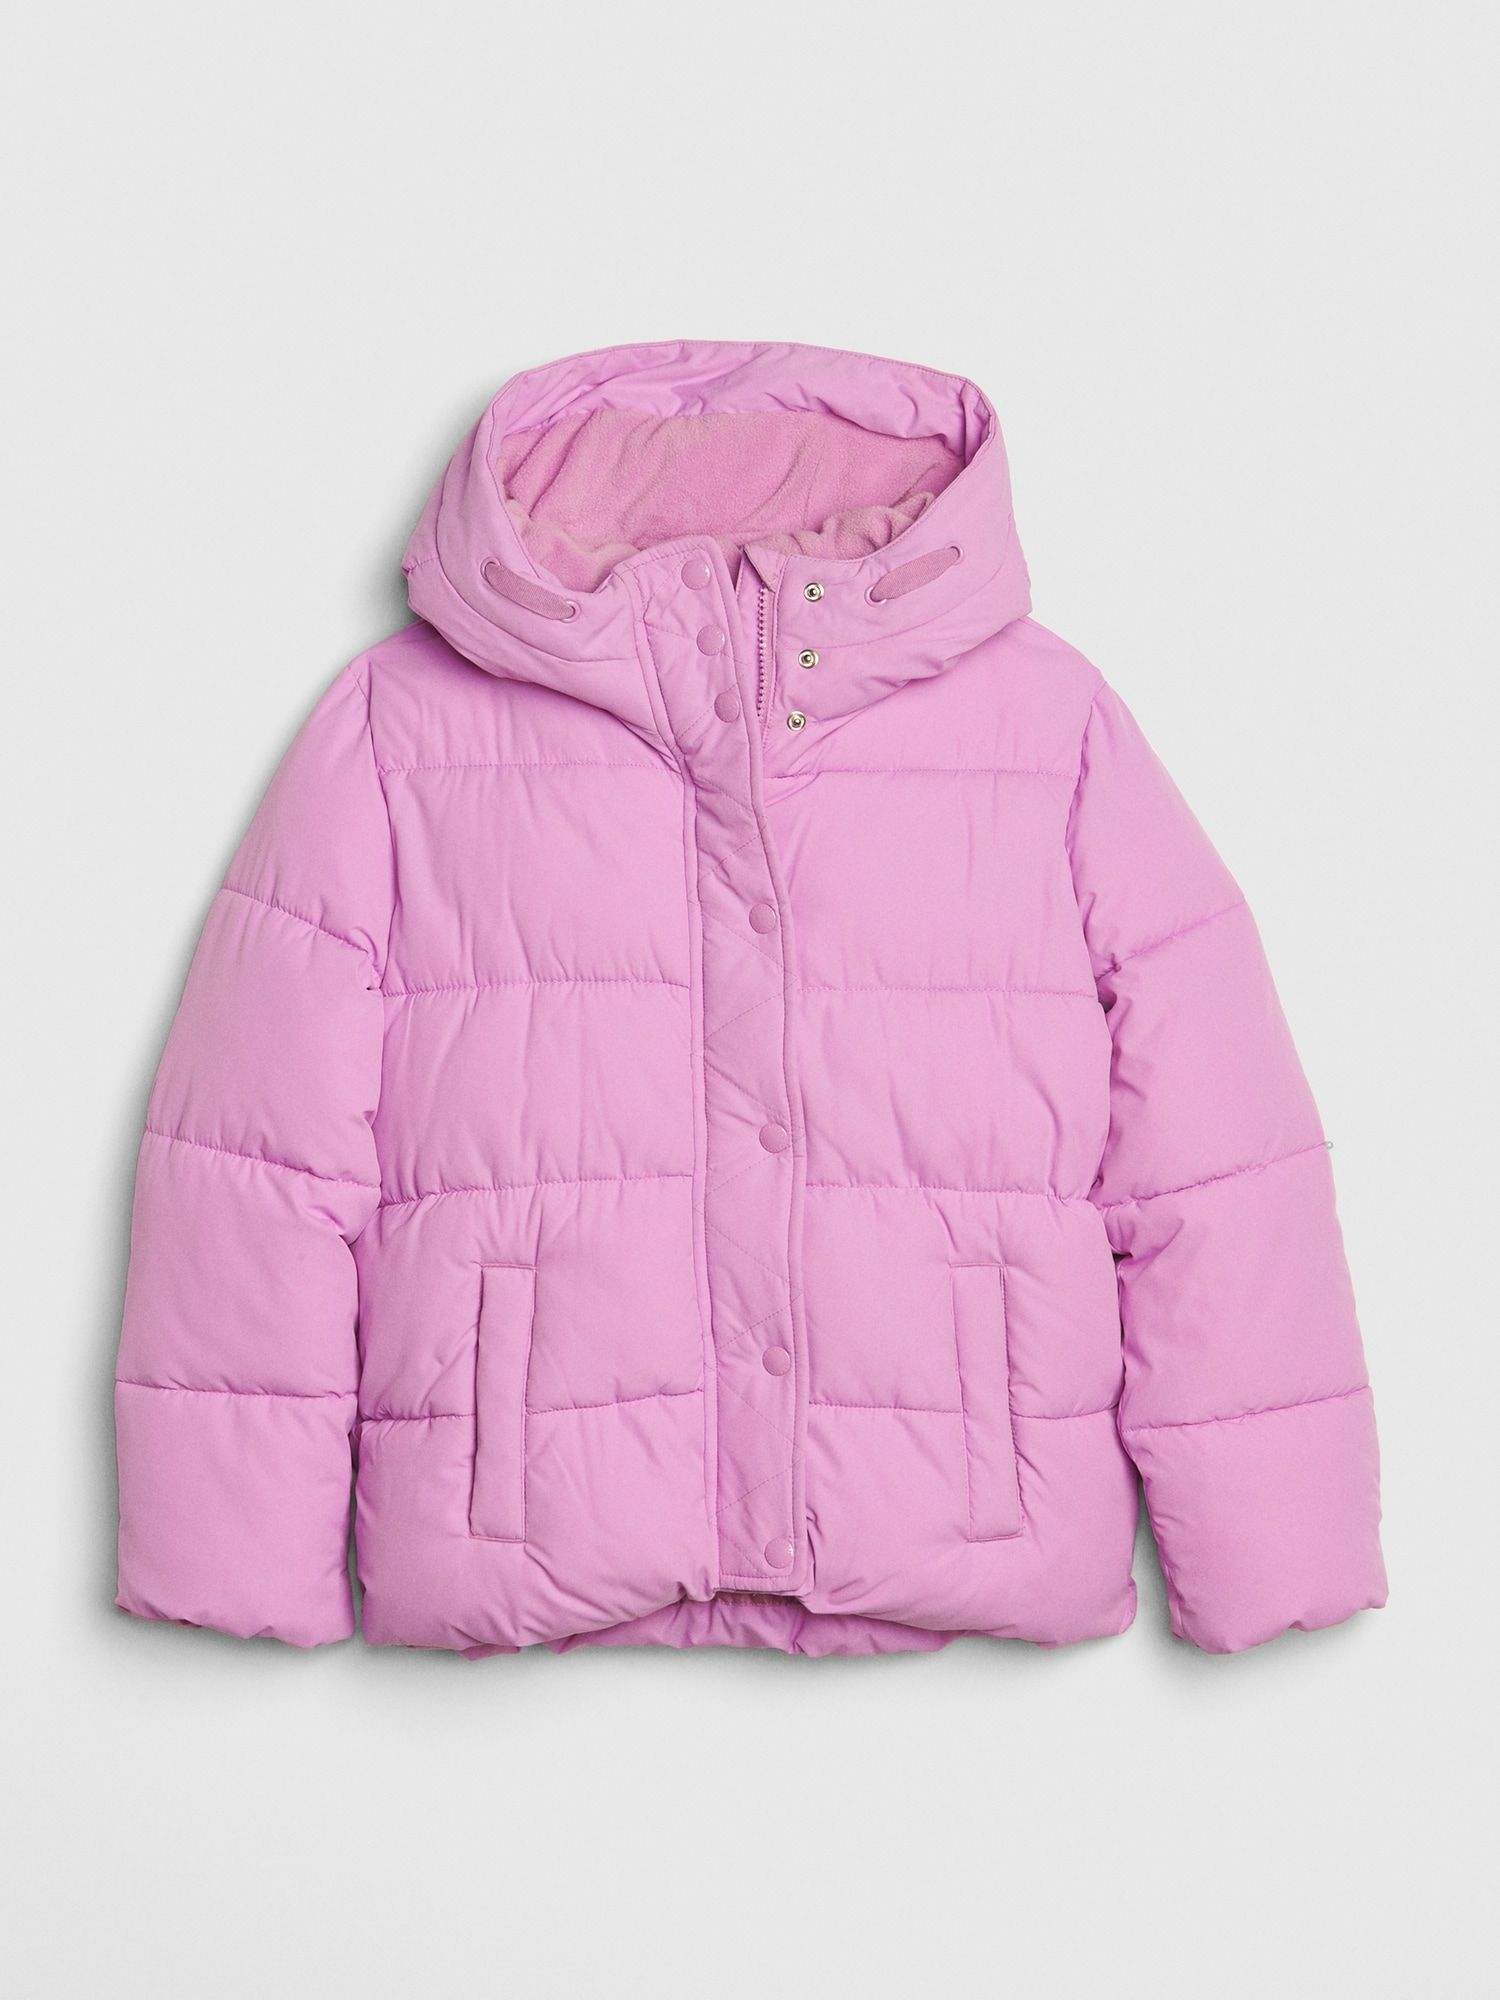 Gap Kids Coldcontrol Max Puffer Purple Orchid Girl Coat Baby Kids Clothes Puffer [ 2000 x 1500 Pixel ]